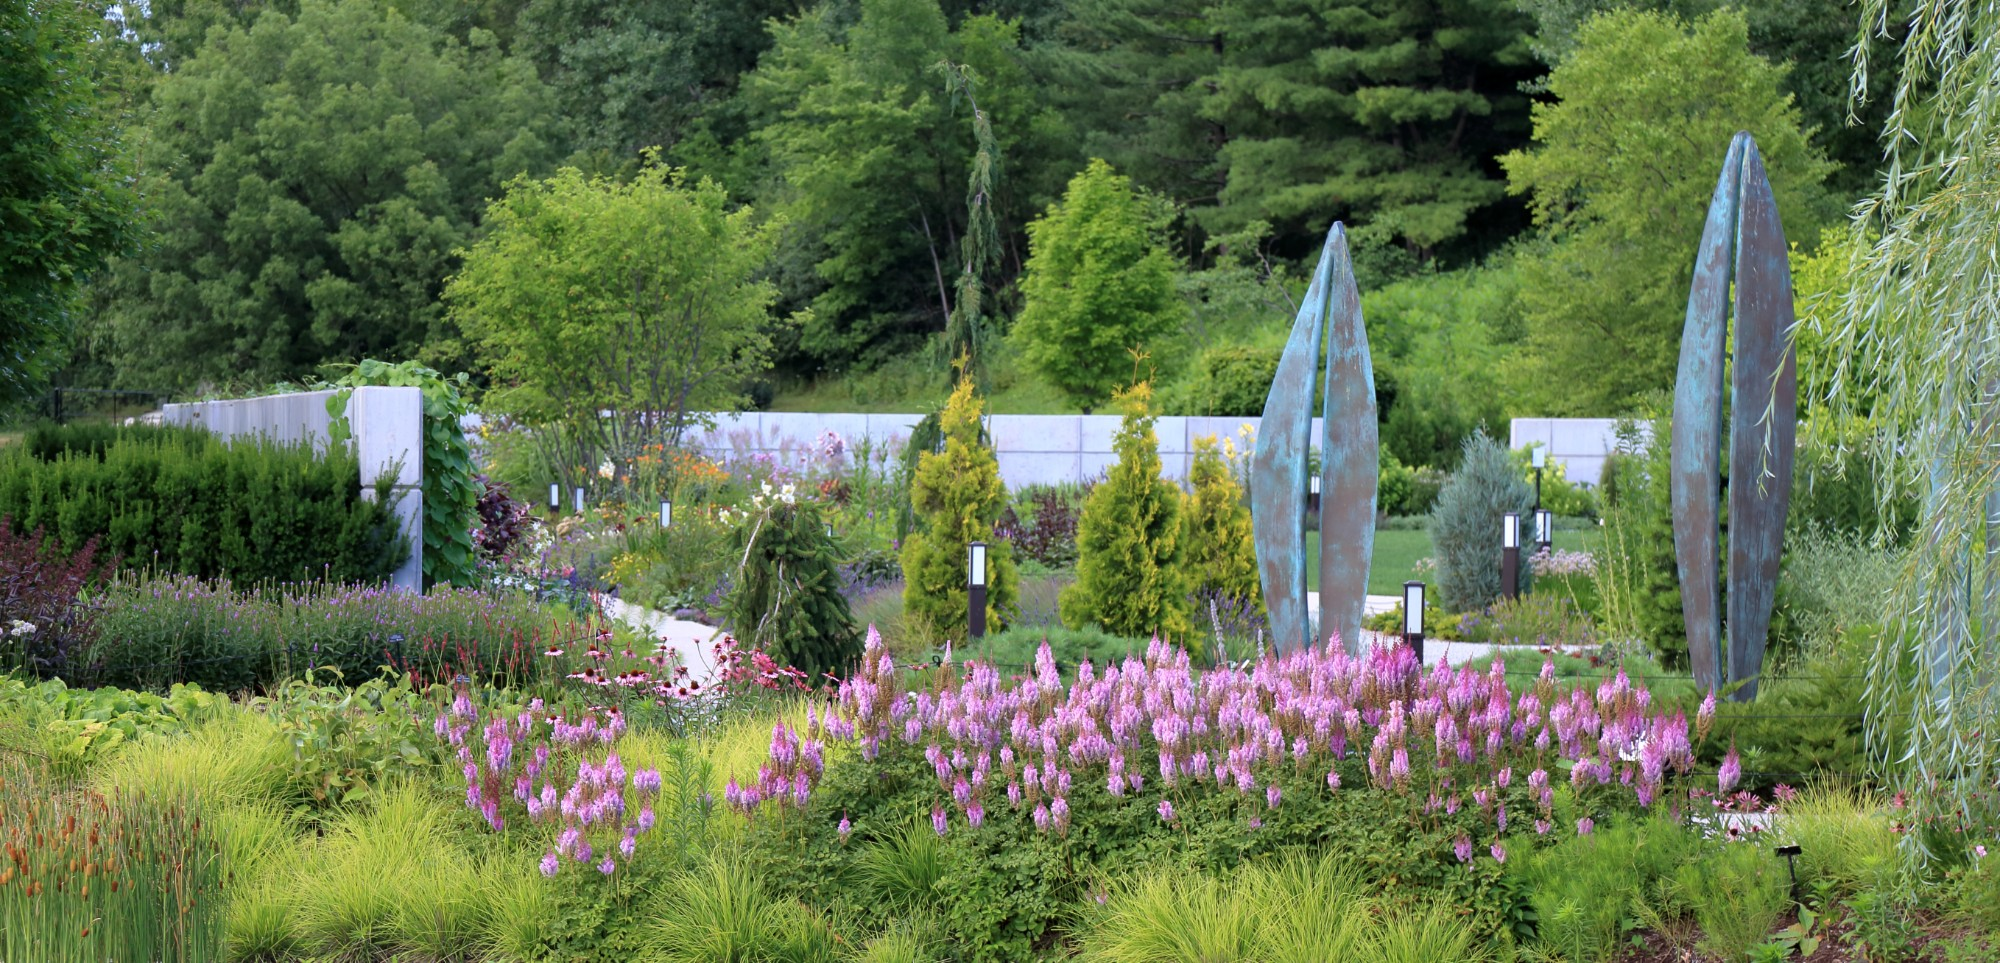 Looking northeast towards Persona I, II and III and the Koehn Garden in the background, July 7. Photo by Kelly Norris.